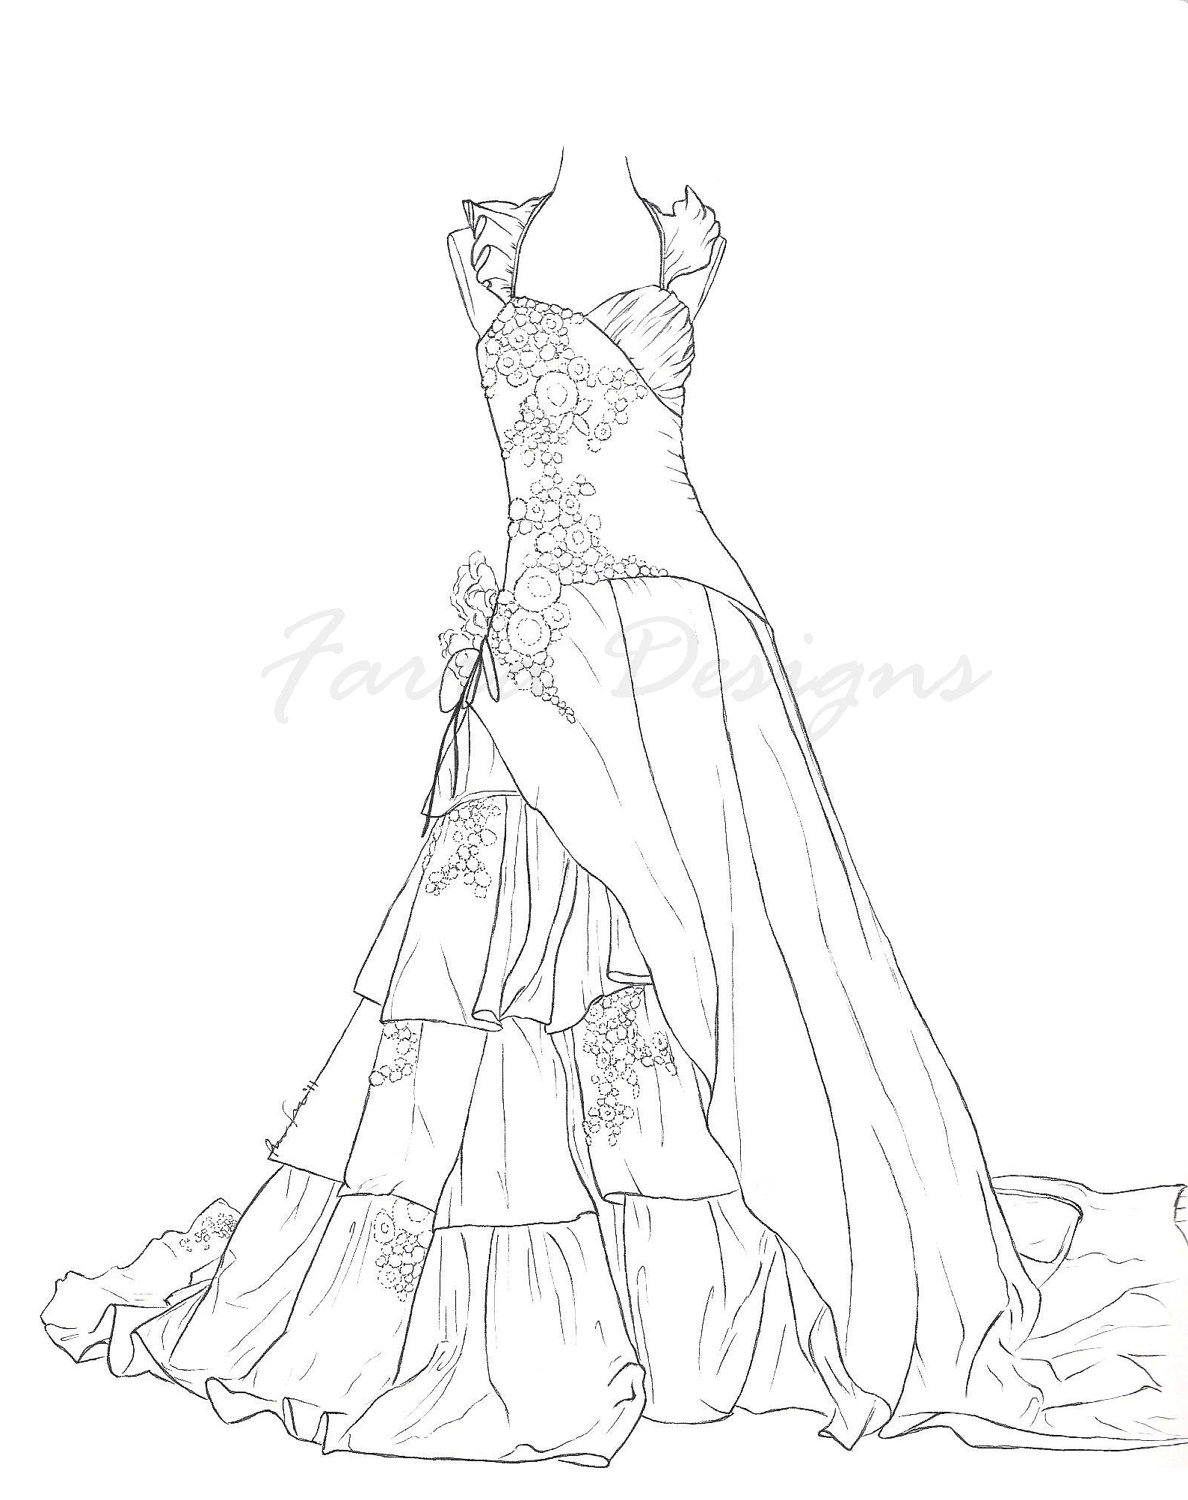 coloring pages for girls dresses dress coloring pages free printable dress coloring pages dresses pages girls coloring for